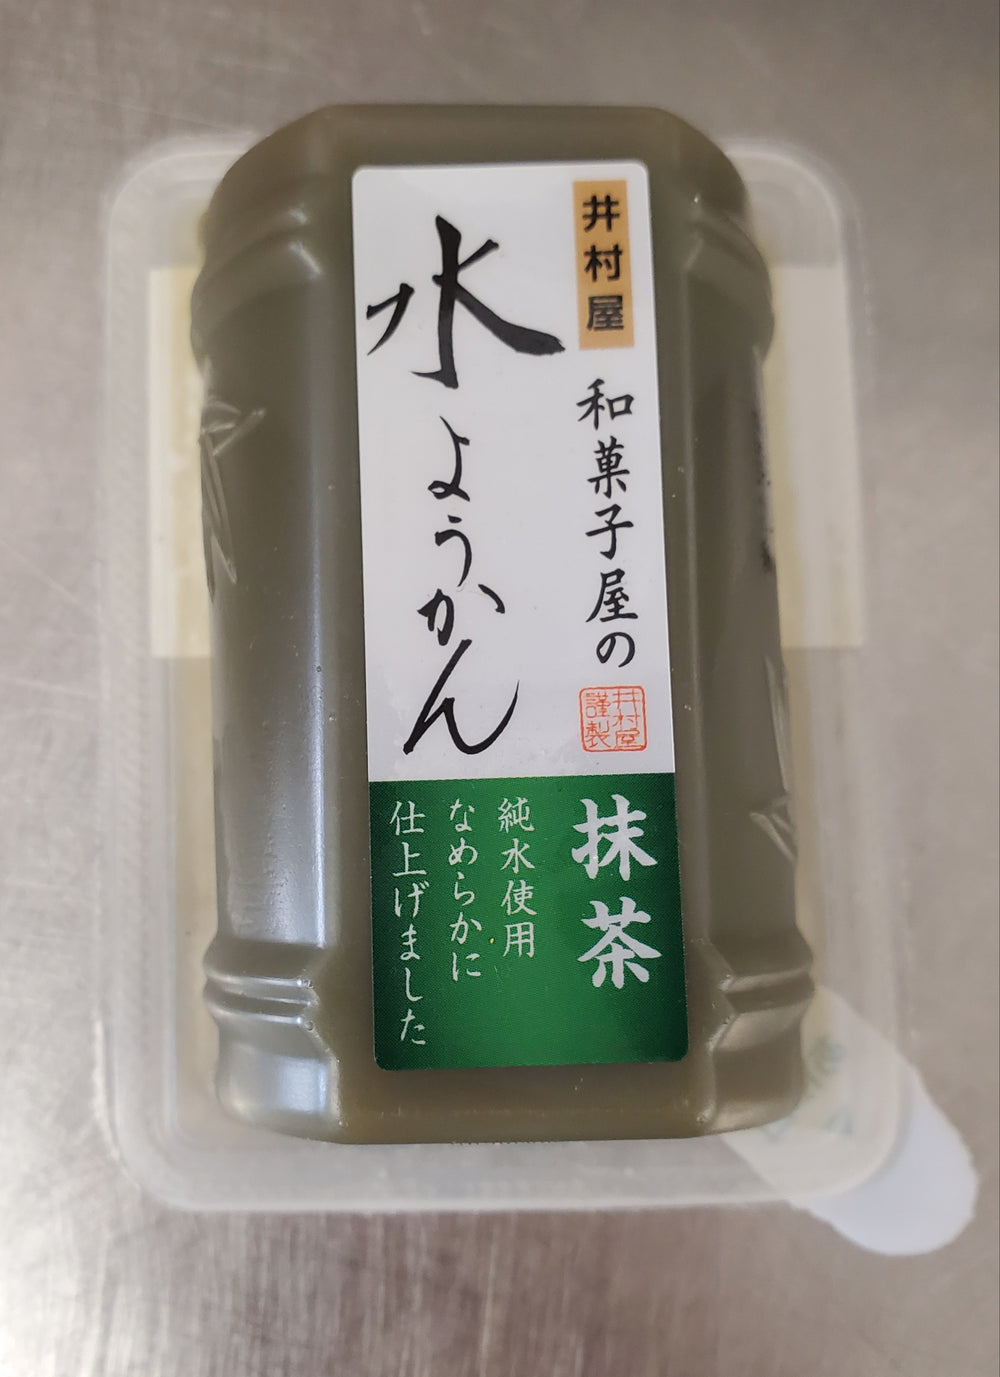 Soft Matcha Jelly / 抹茶水ようかん 83g - Konbiniya Japan Centre